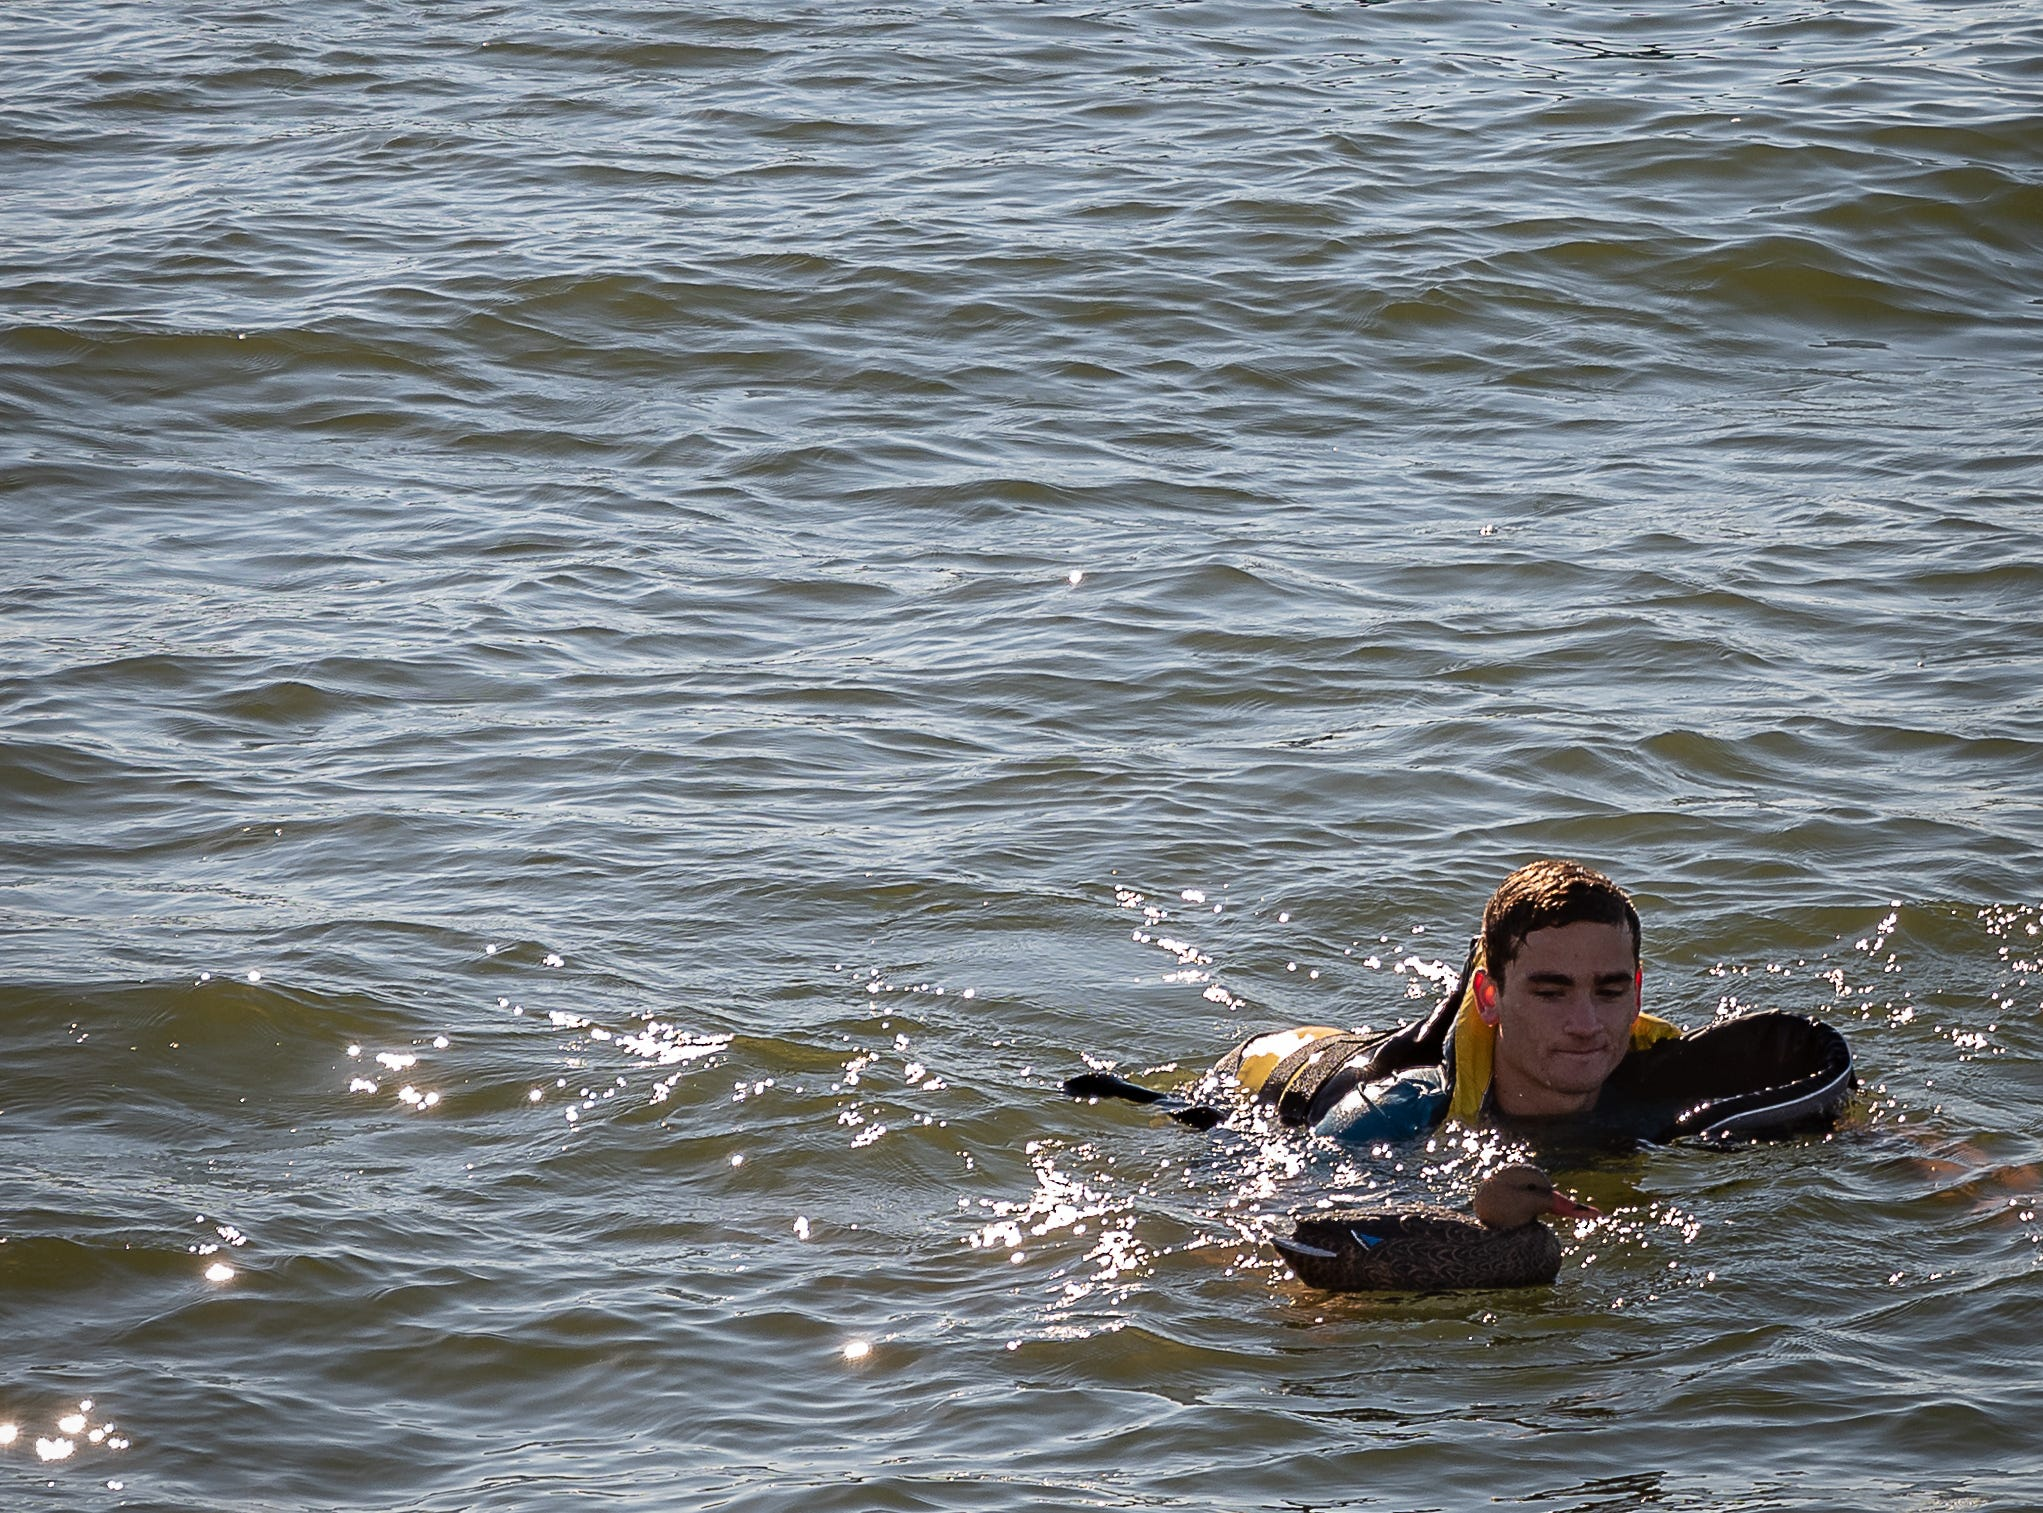 A Coast Guard member swims in the water at Cape Charles Harbor during the demonstration of cold-water survival techniques on Tuesday, Oct. 30, 2018.